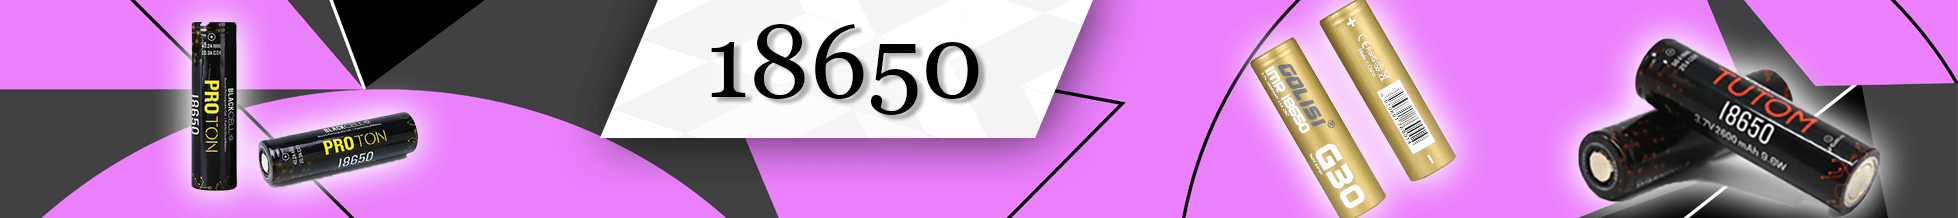 battries-category-banner.png